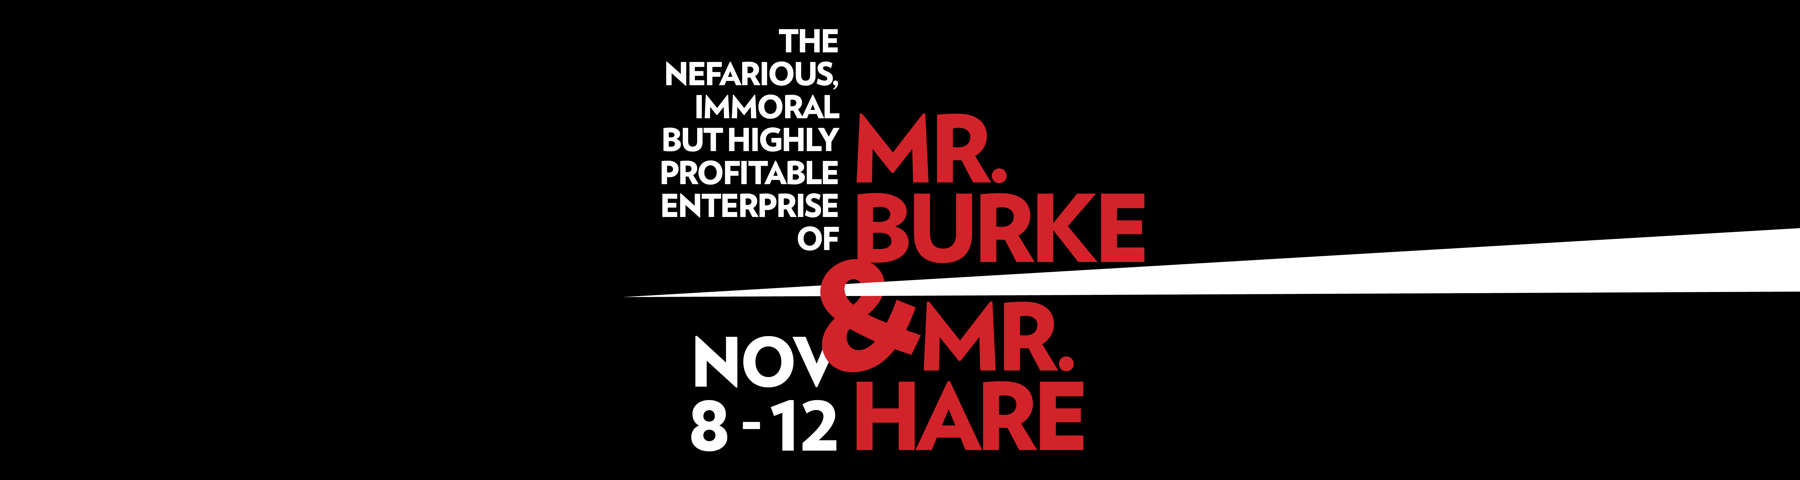 The Nefarious, Immoral but Highly Profitable Enterprise of Mr. Burke & Mr. Hare | NOV 8-12 | Boston Lyric Opera